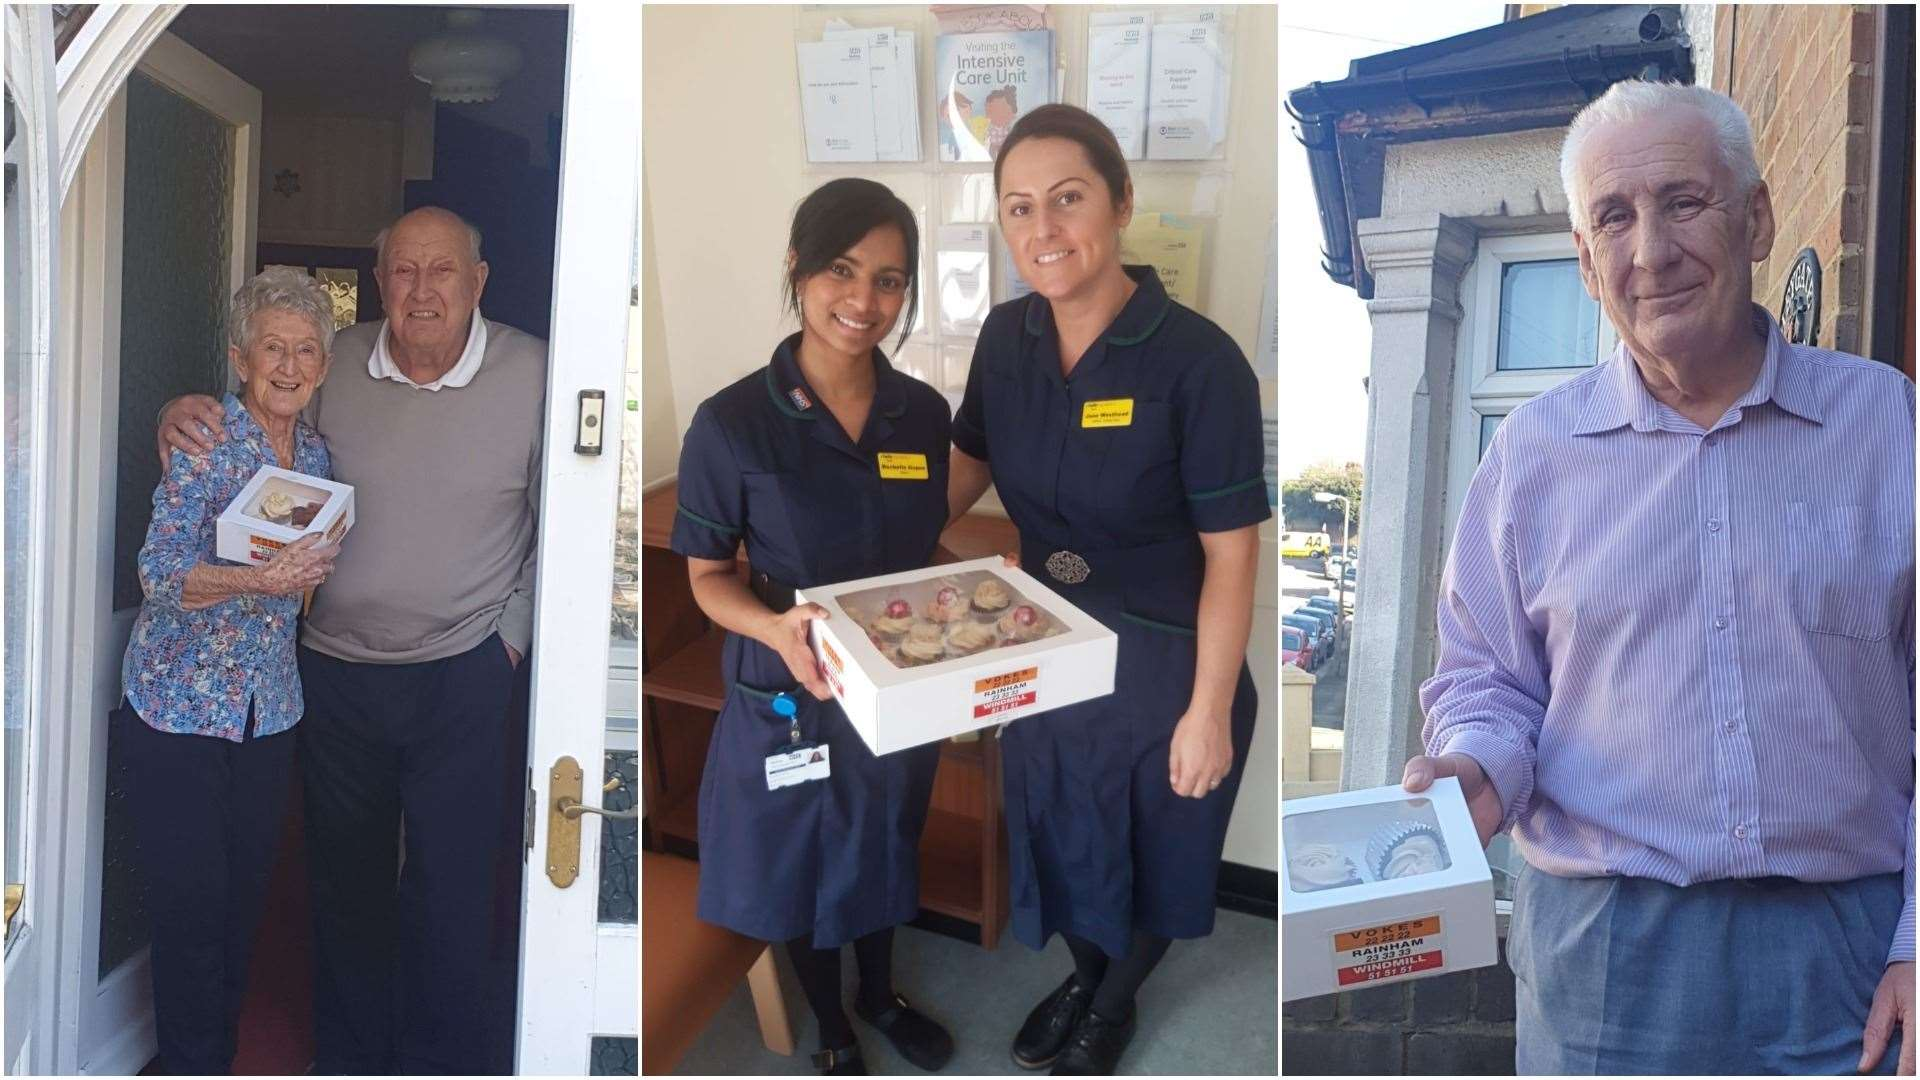 Some of the recipients of the cake giveaway run by Vokes, Rainham and Windmill Taxis